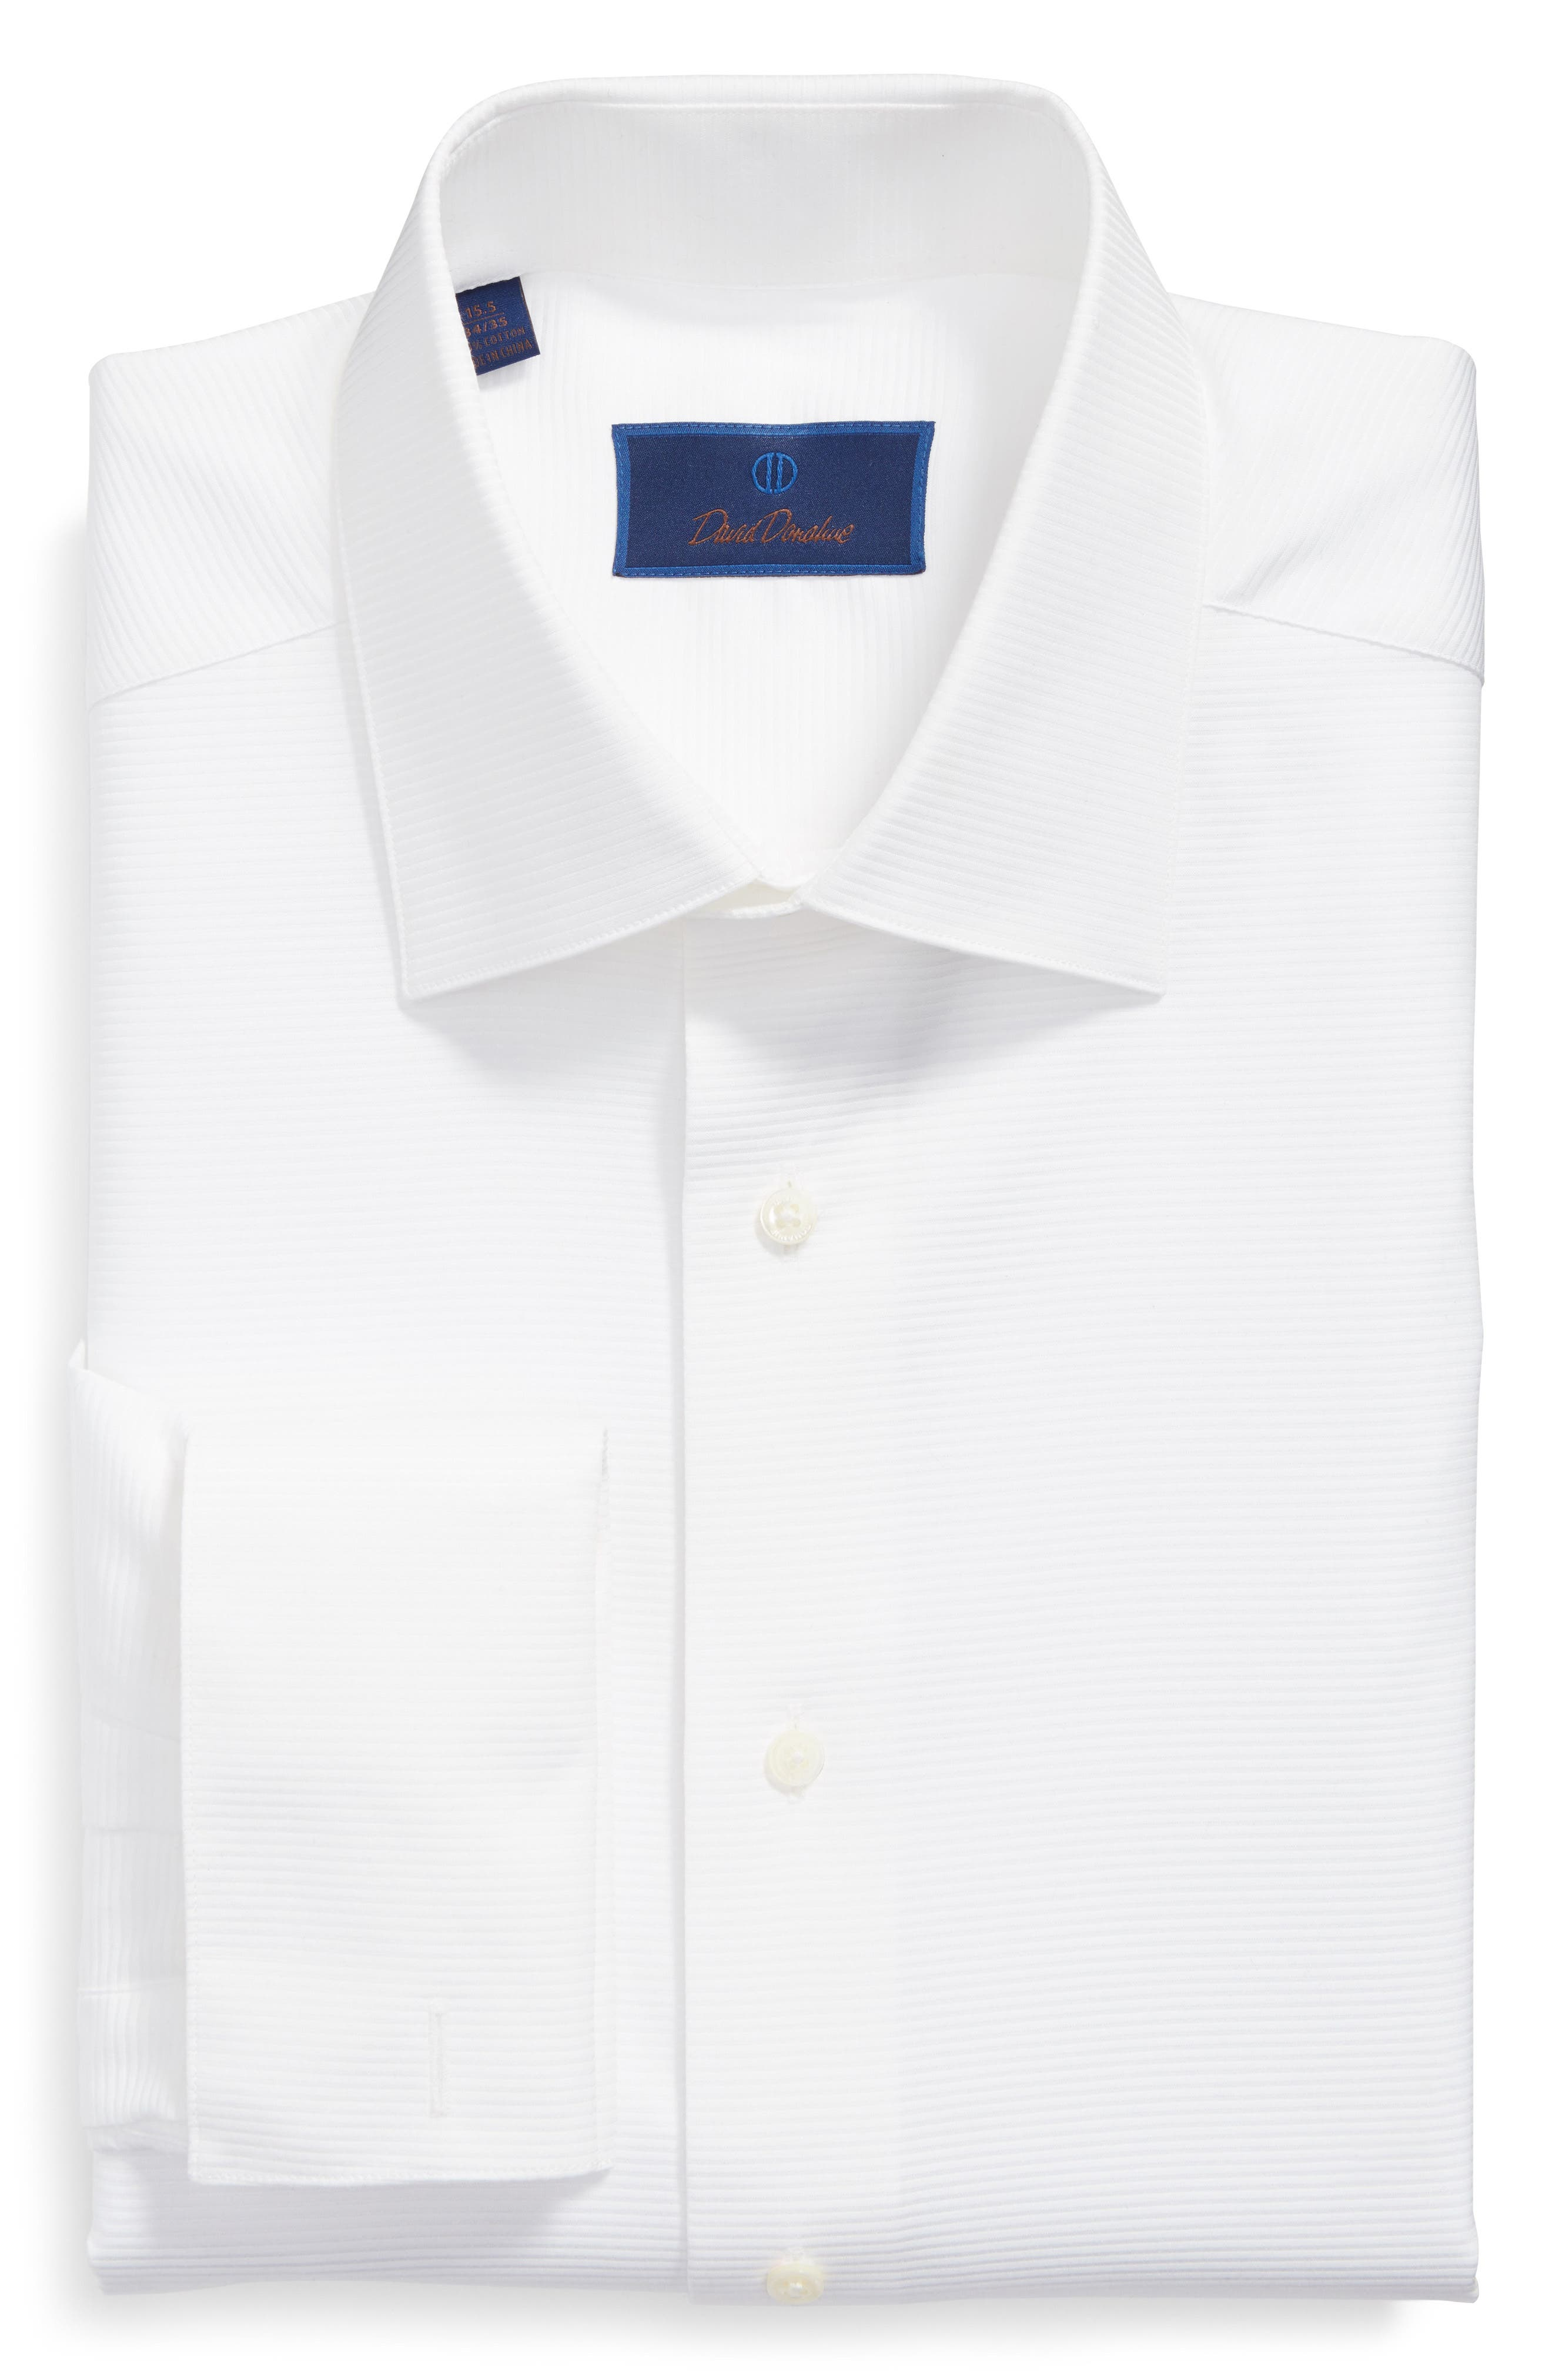 DAVID DONAHUE, Horizontal Twill Regular Fit Tuxedo Shirt, Alternate thumbnail 5, color, WHITE